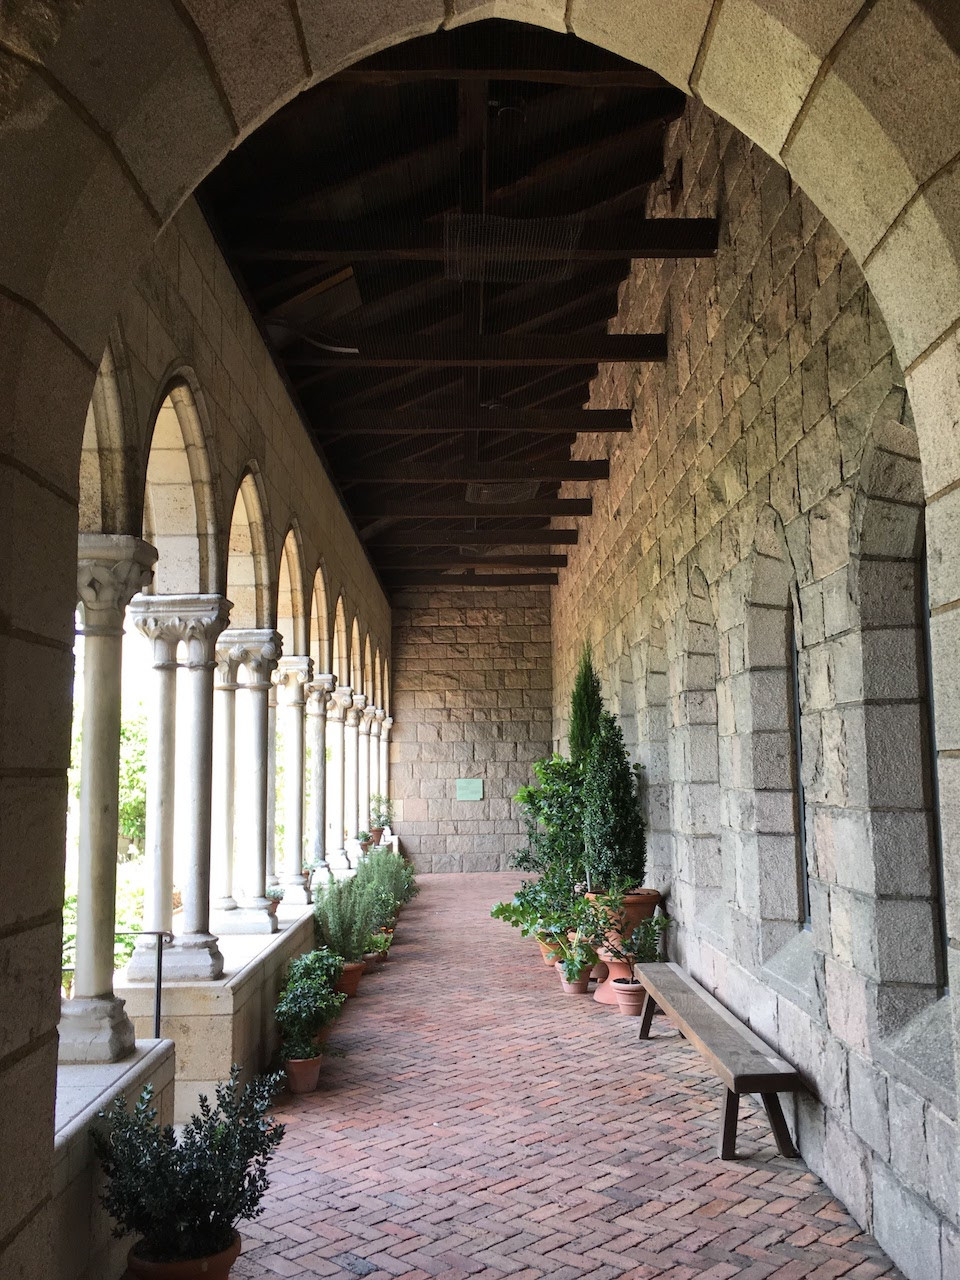 The Met Cloisters is scheduled to reopen on September 12